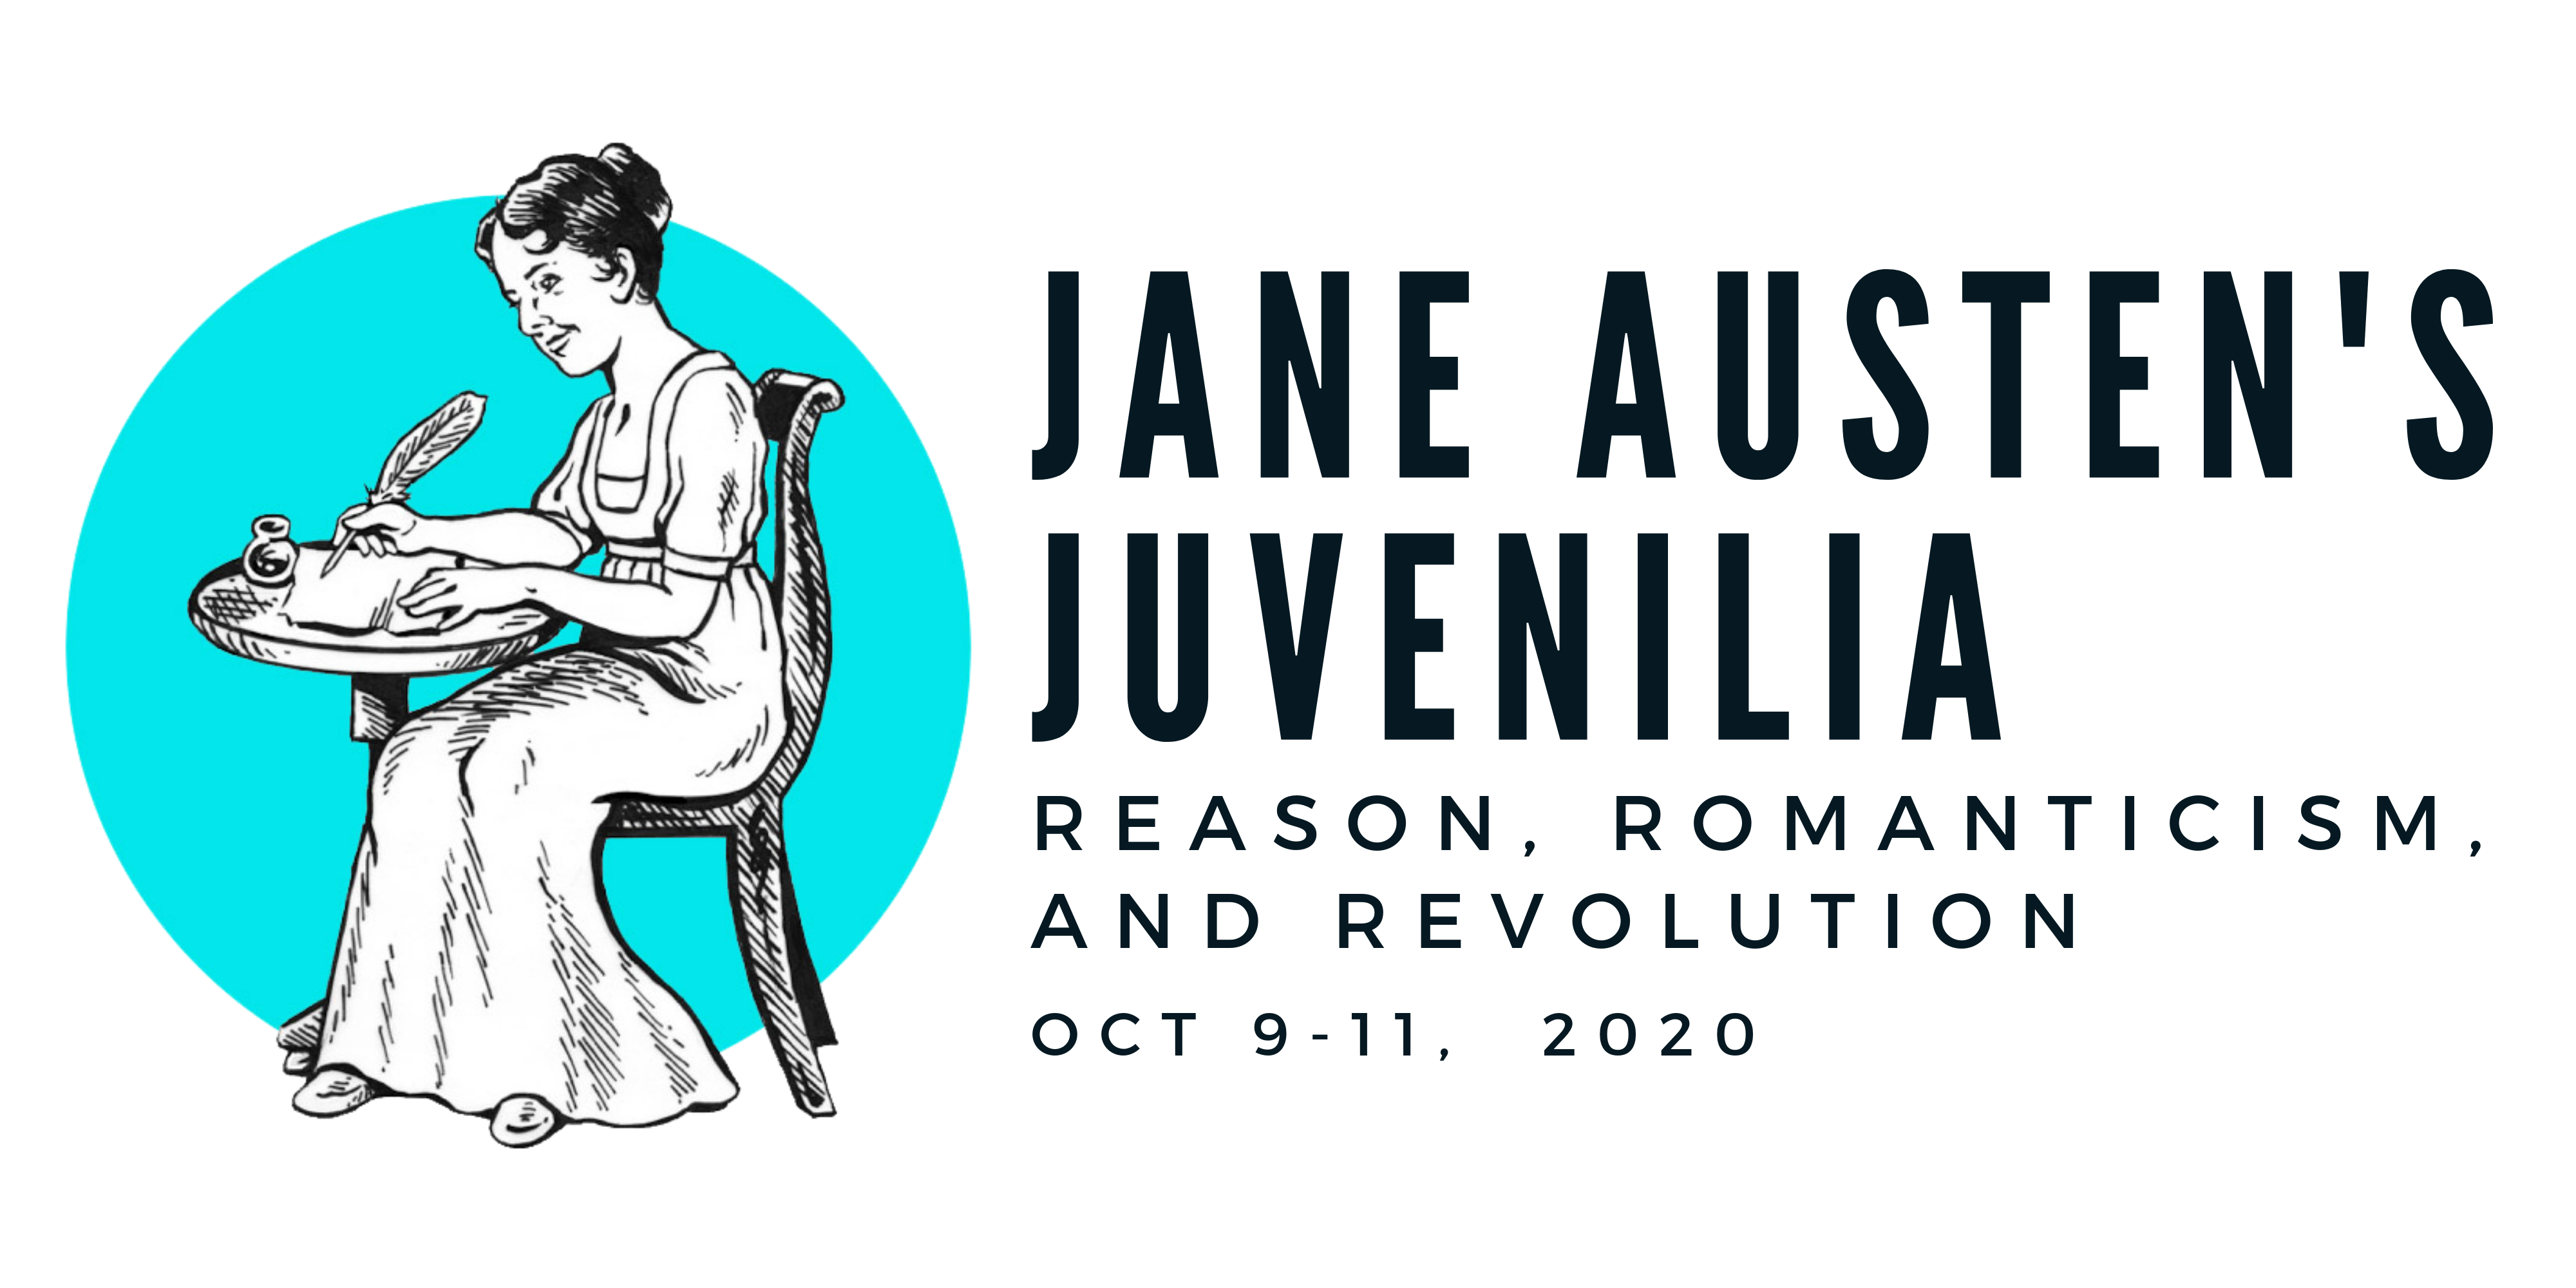 CANCELED - JASNA 2020 AGM - Jane Austen's Juvenilia:  Reason, Romanticism, and Revolution @ Cleveland, Ohio